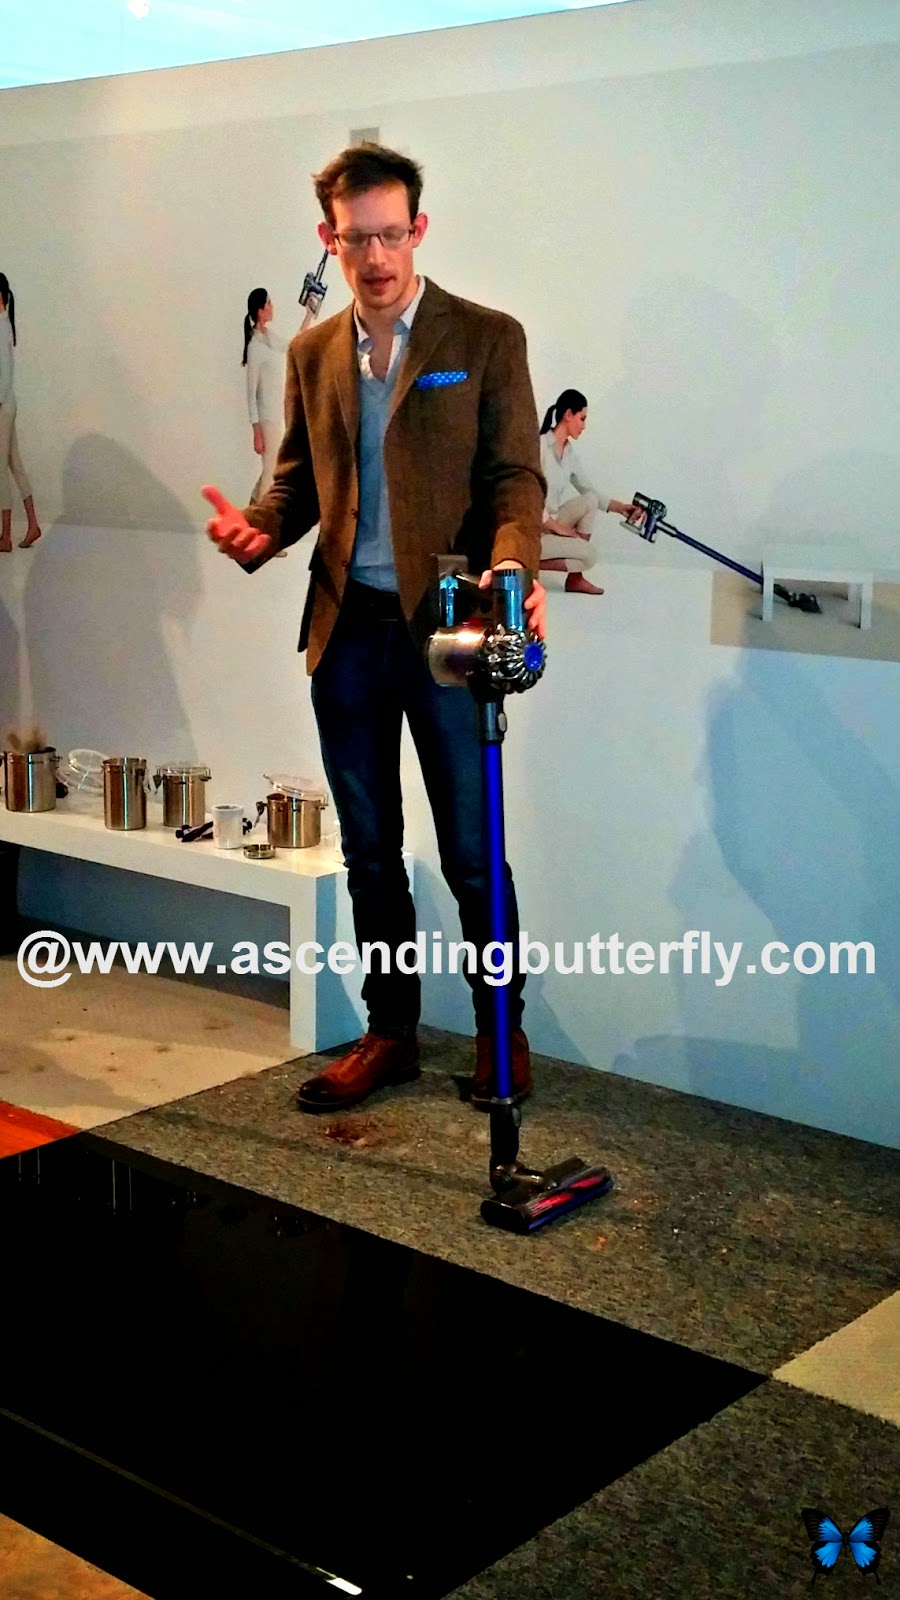 Dyson Rep giving product demonstration of the Dyson Digital Slim DC59